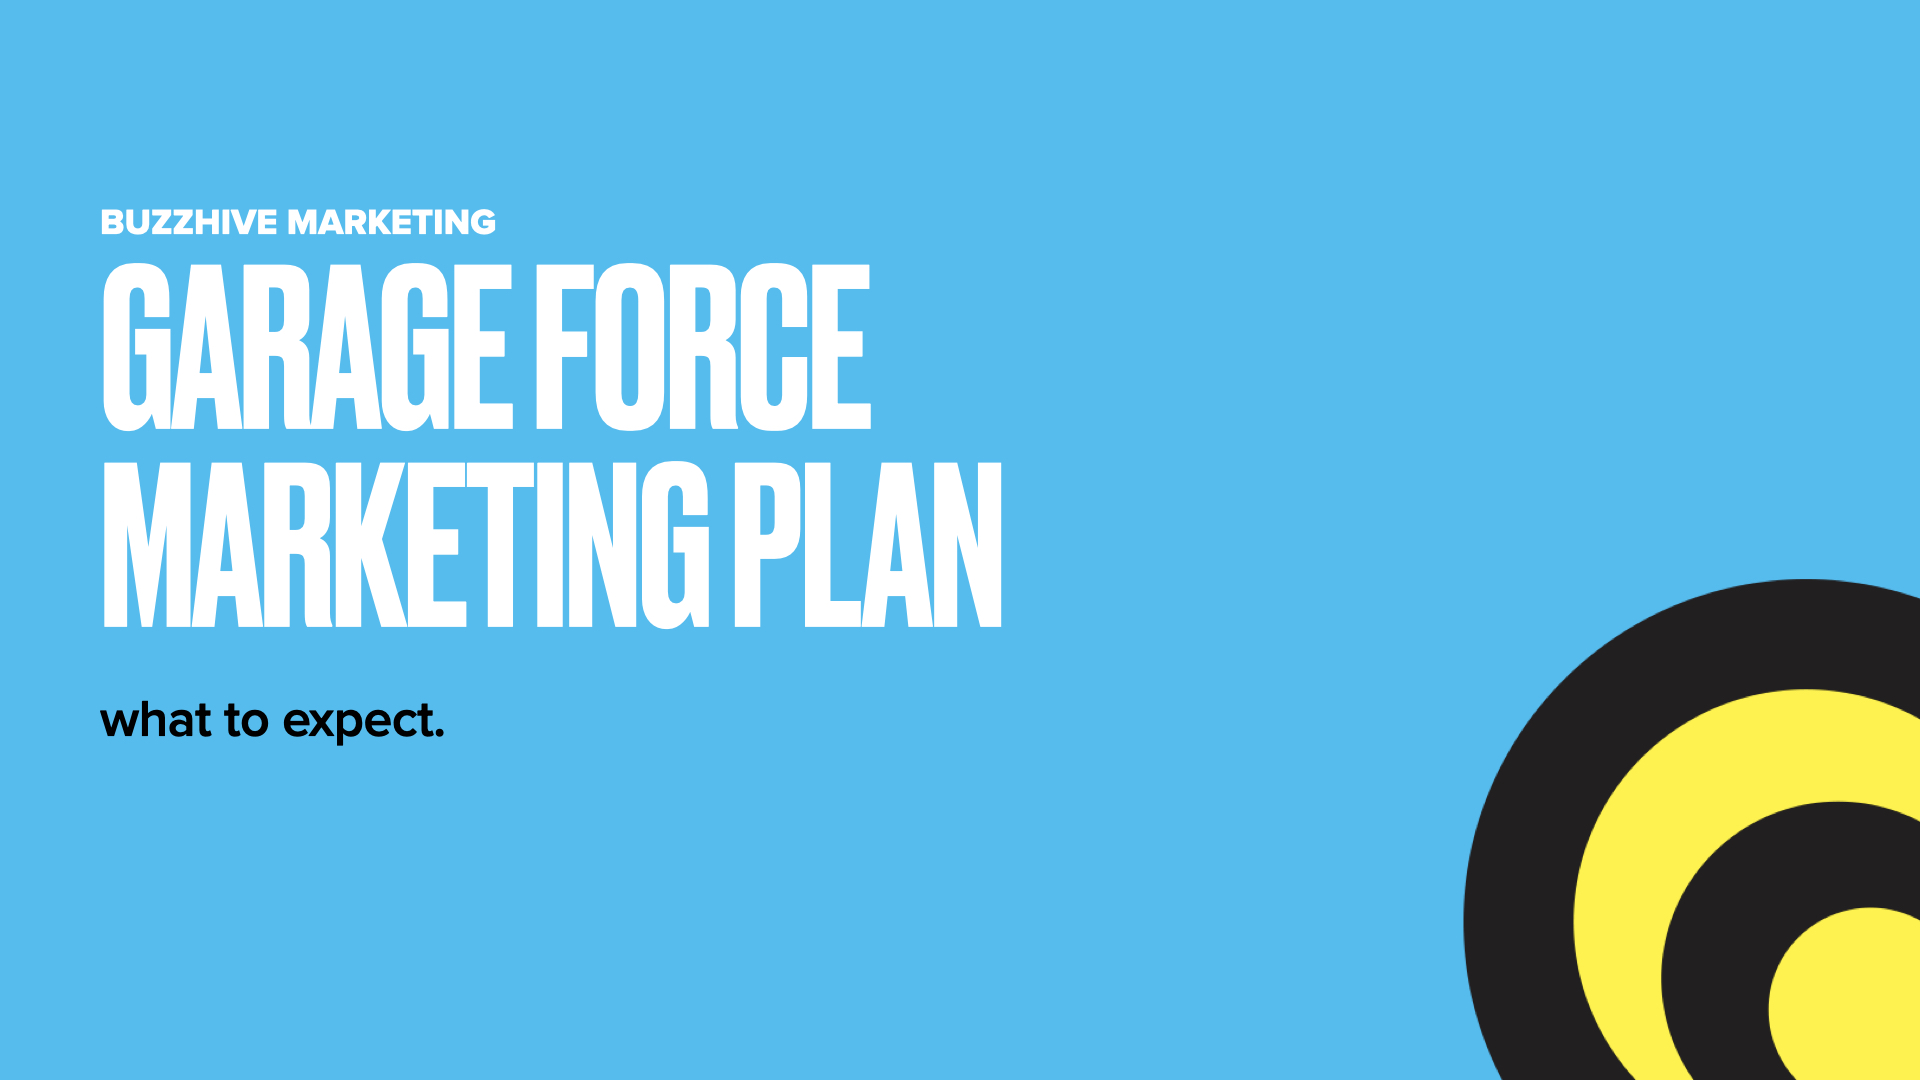 Buzzhive-Marketing-Approach.001-1 Garage Force Marketing